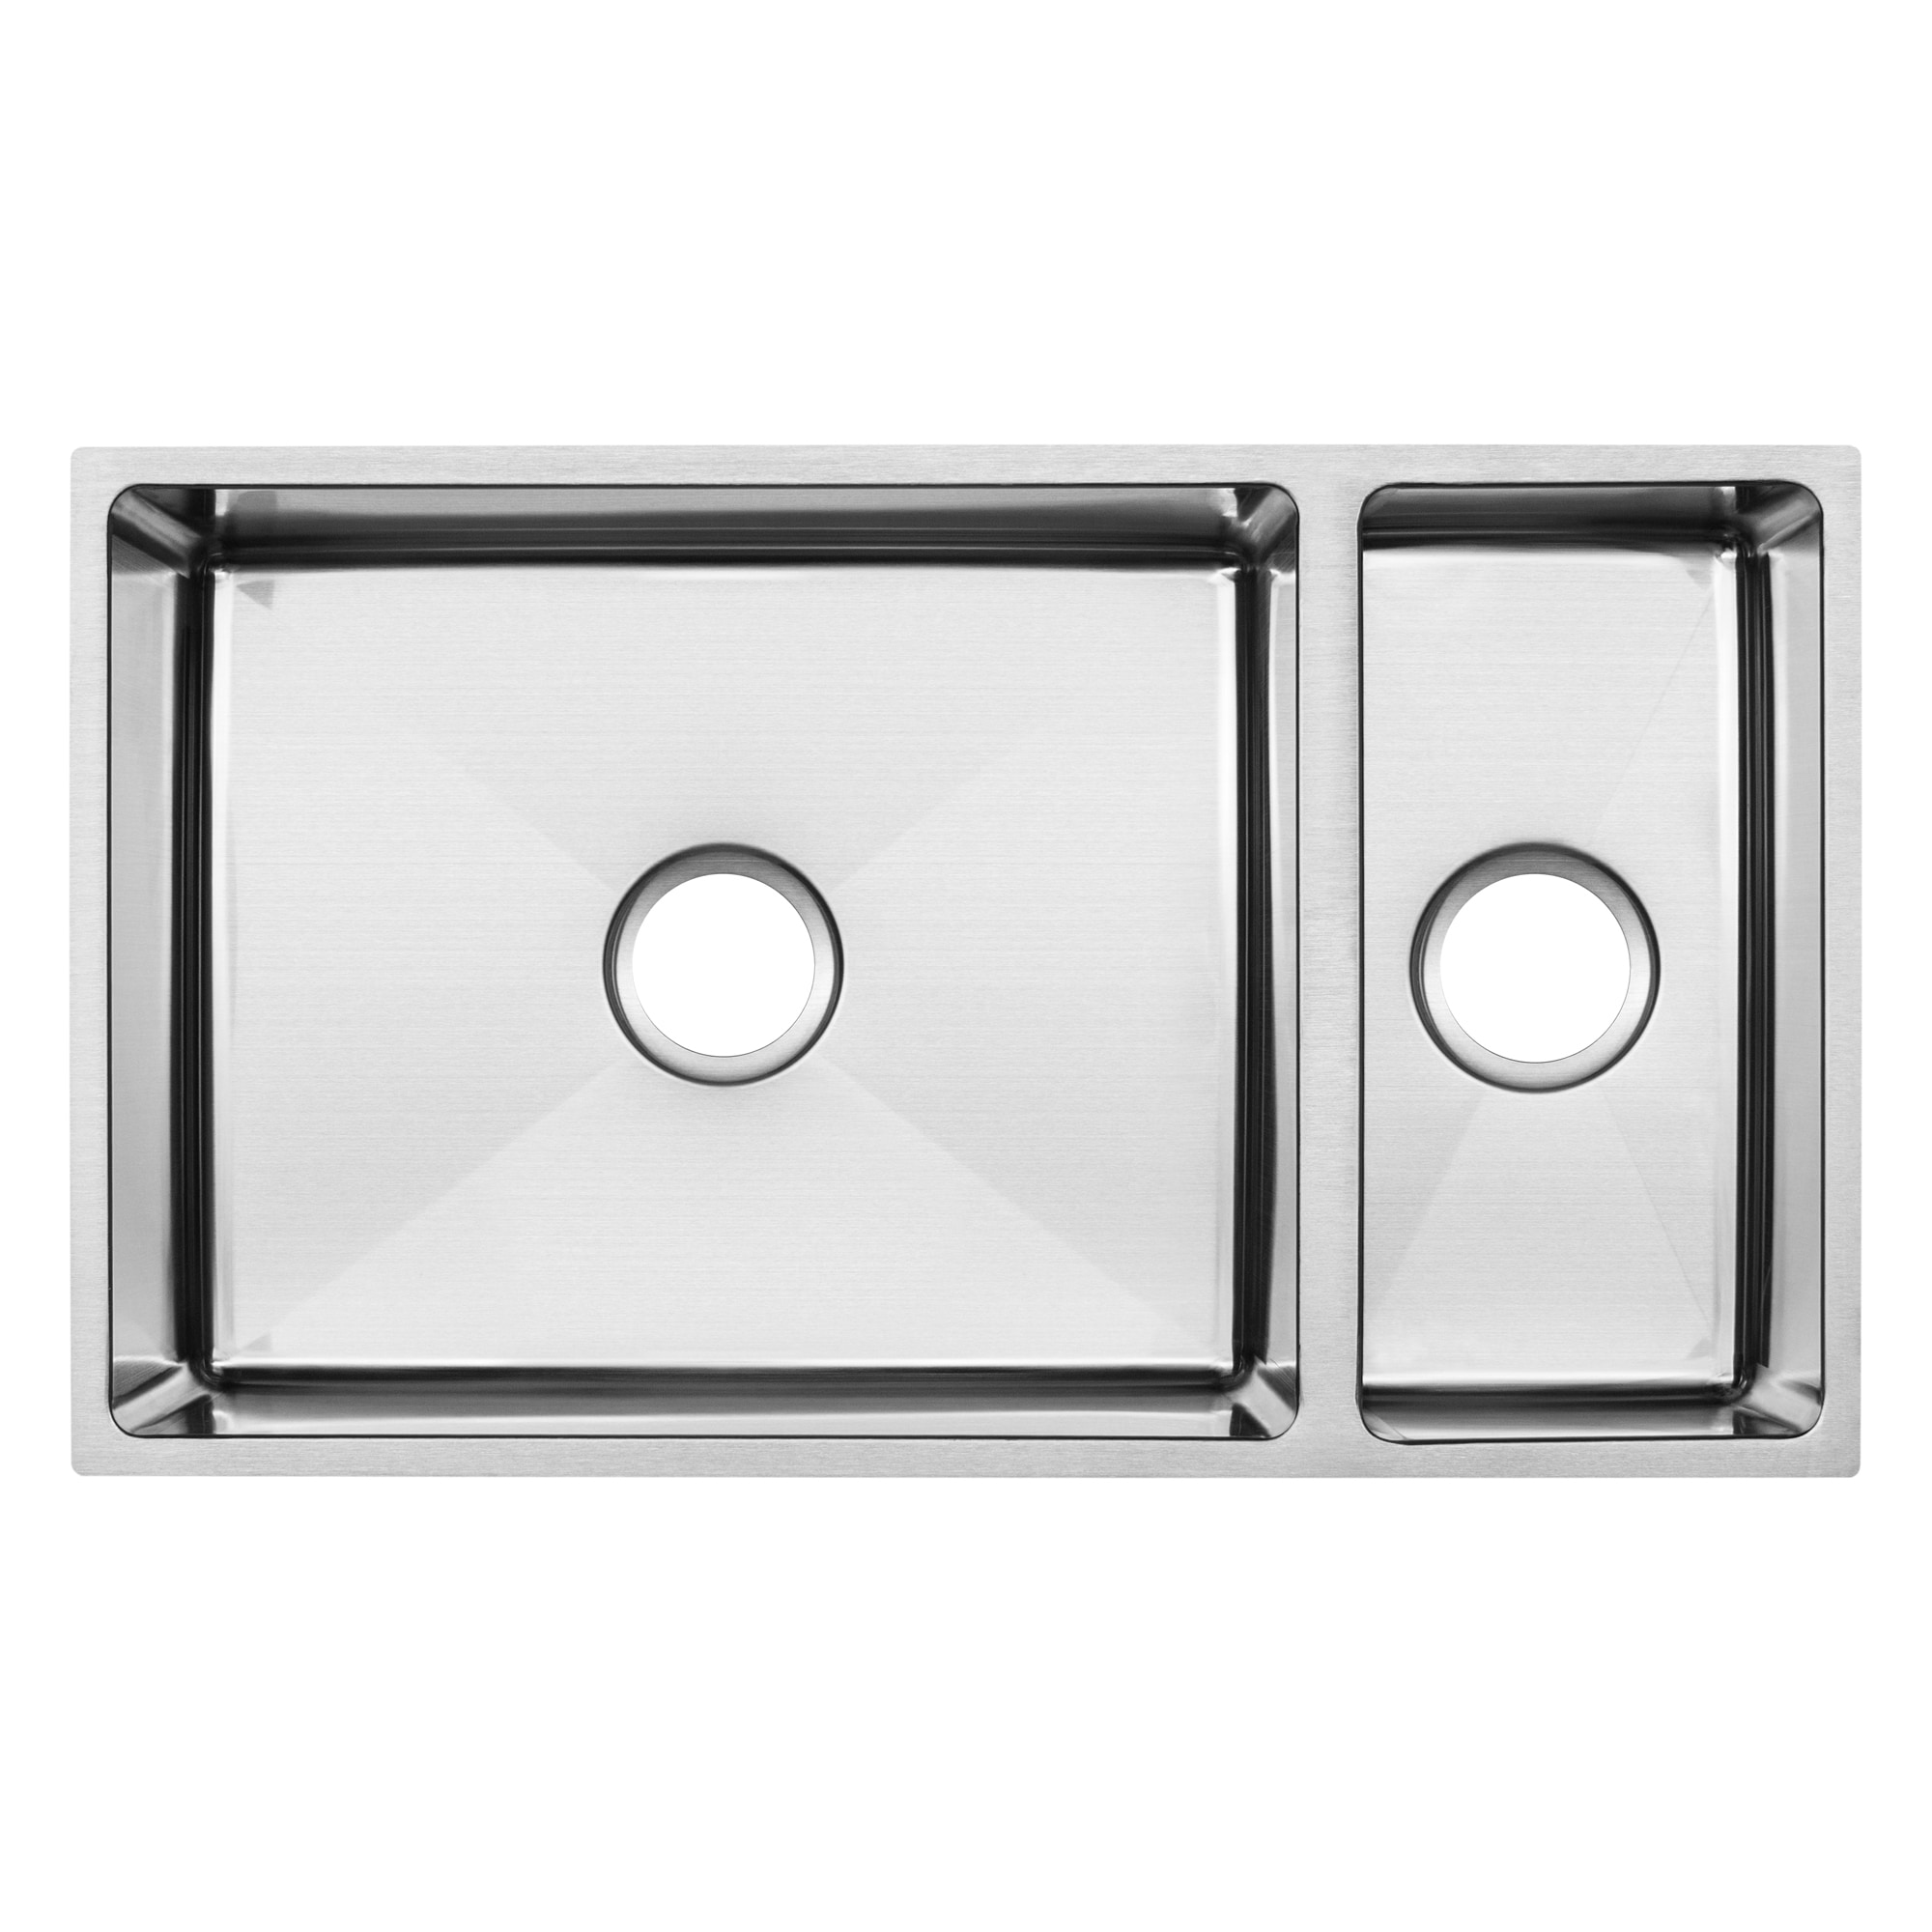 Shop ticor stainless steel undermount 31 1 4 inch 70 30 double bowl kitchen sink with tight radius corners free shipping today overstock 14779107